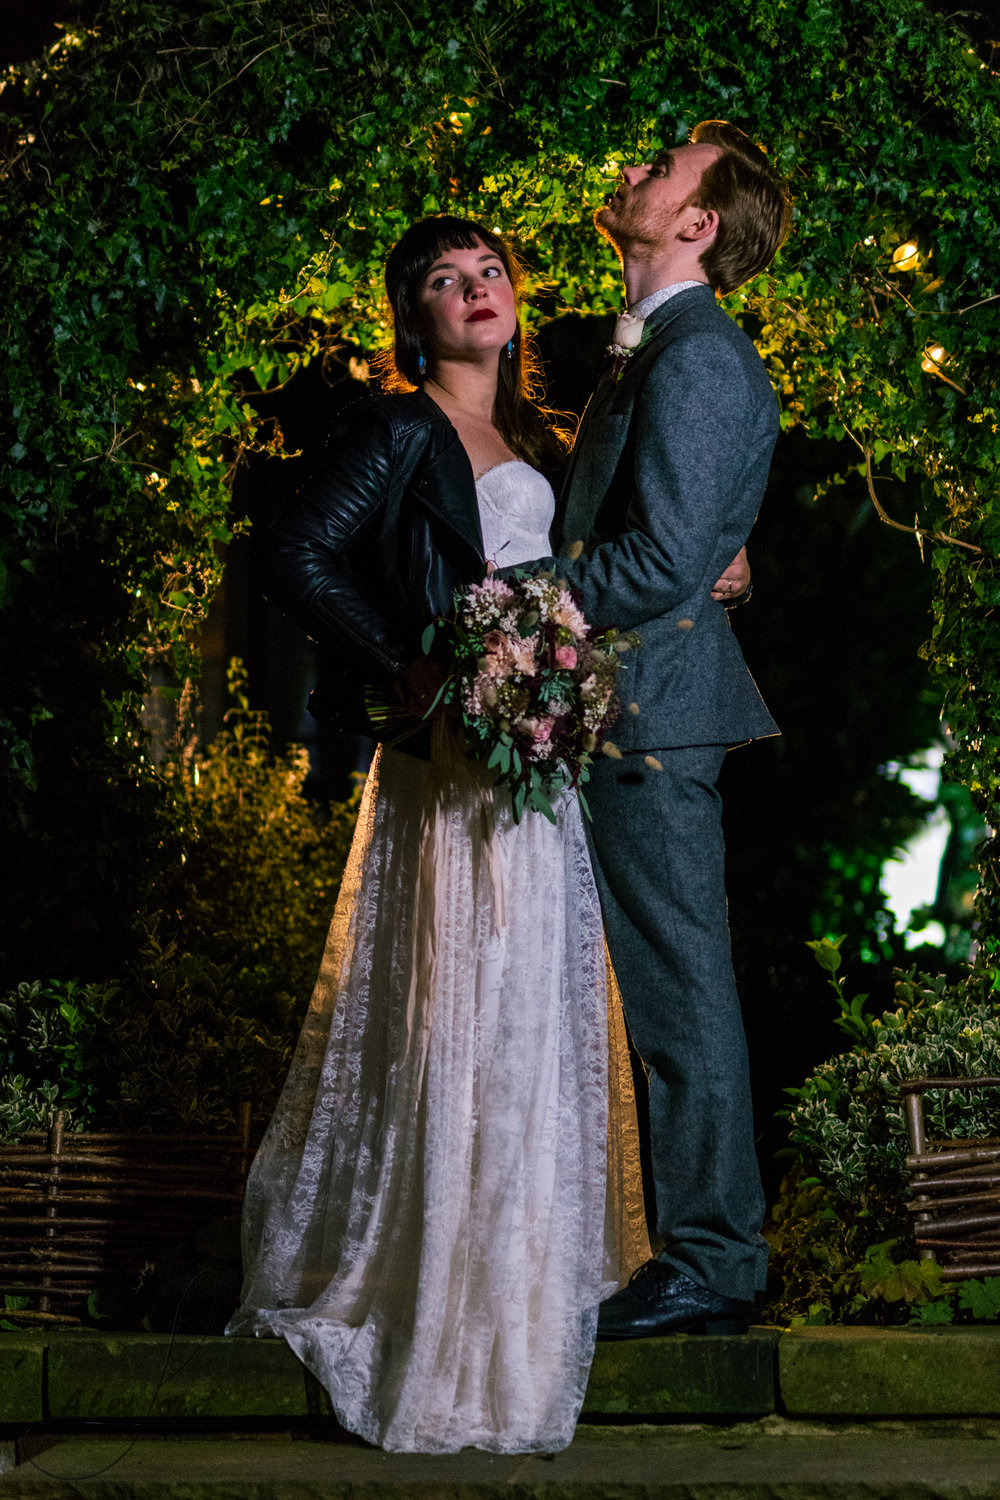 the bride and groom all lit up outside their wedding venue at night